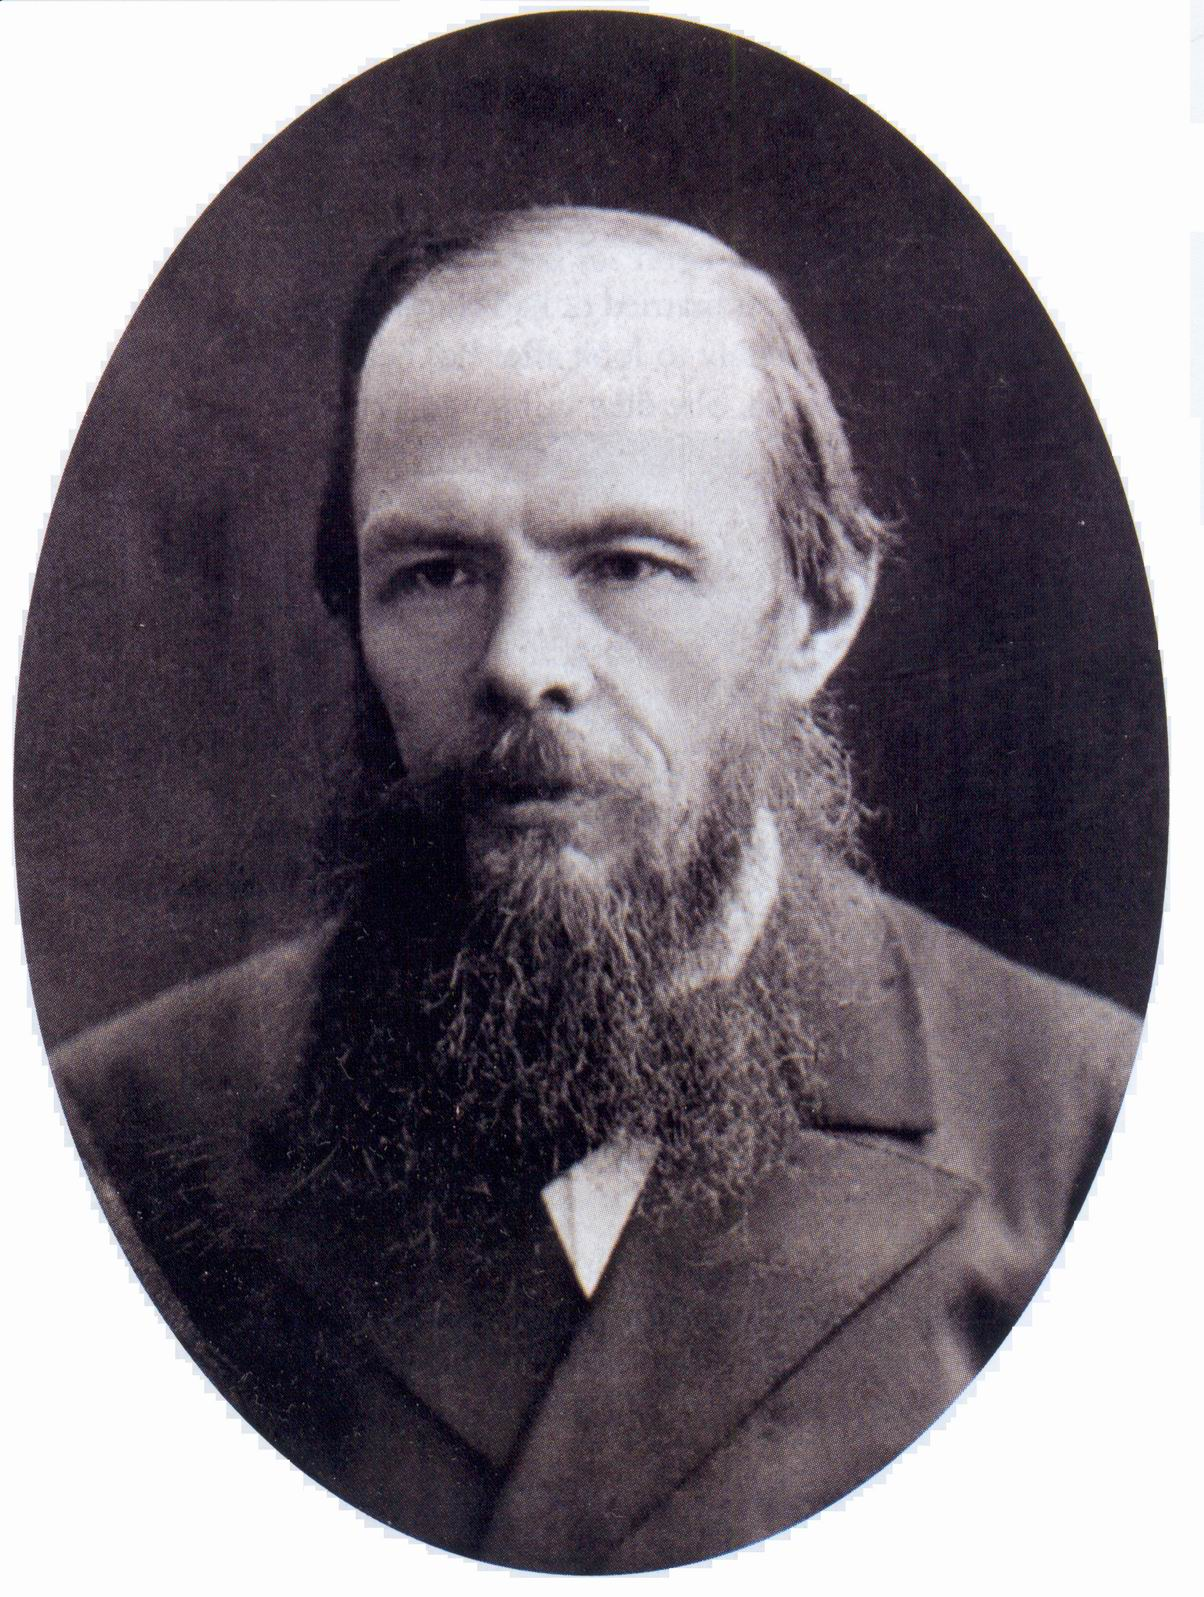 Why did Dostoevsky and Tolstoy go to the old man Ambrose of Optina